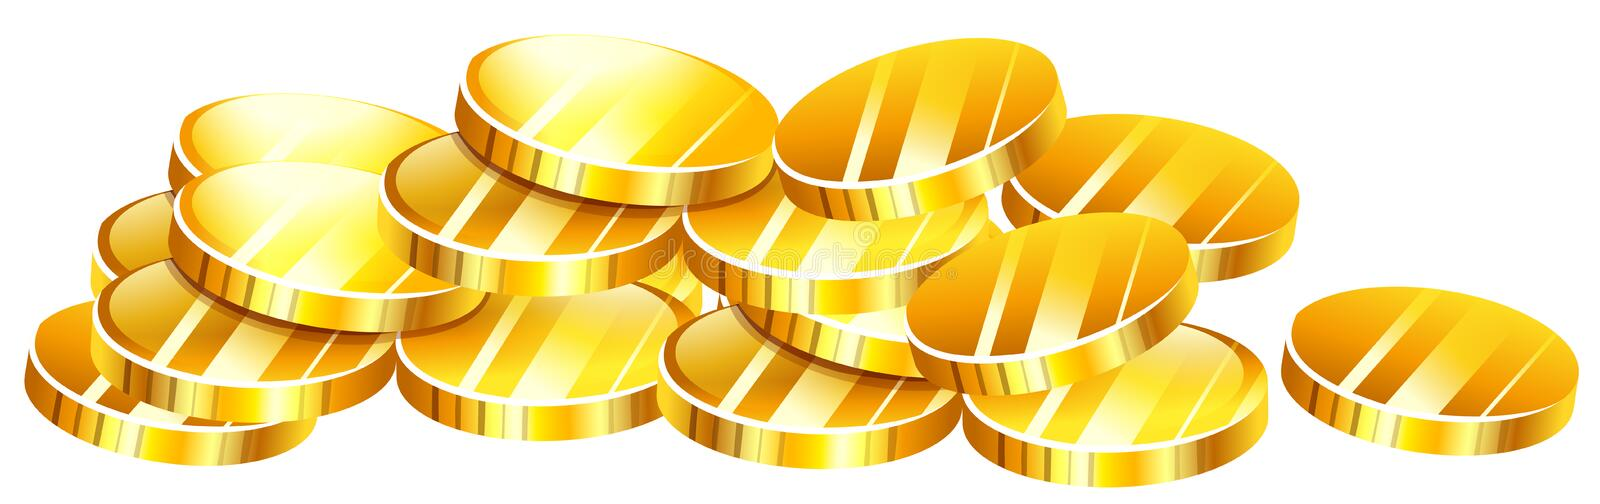 Pile of golden coins stock illustration